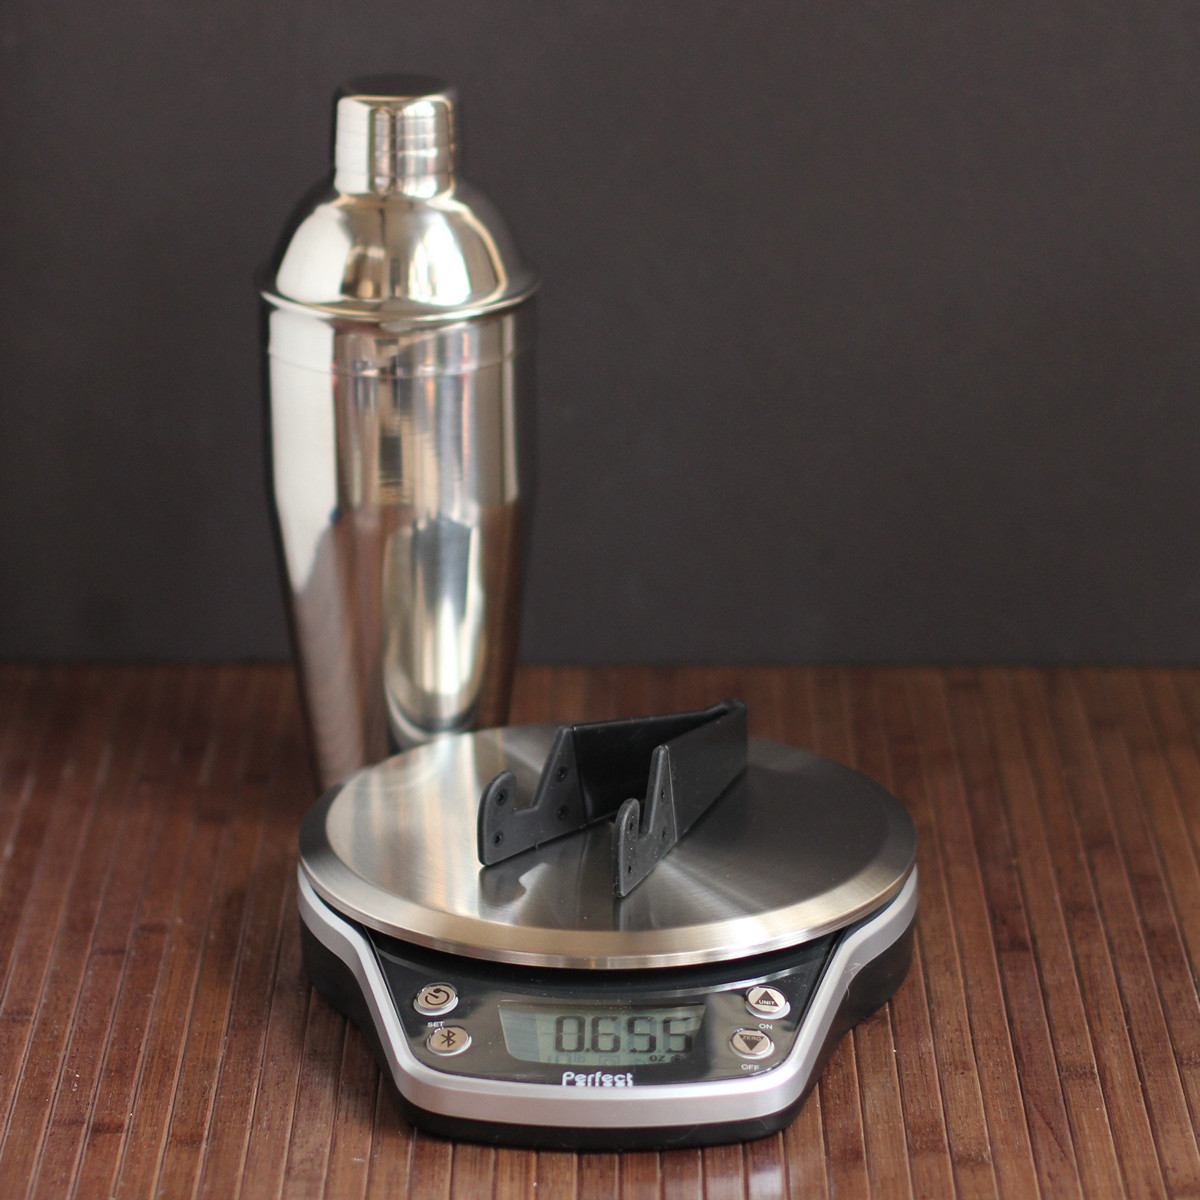 Cookistry 39 s kitchen gadget and food reviews perfect drink for Perfect drink bluetooth scale